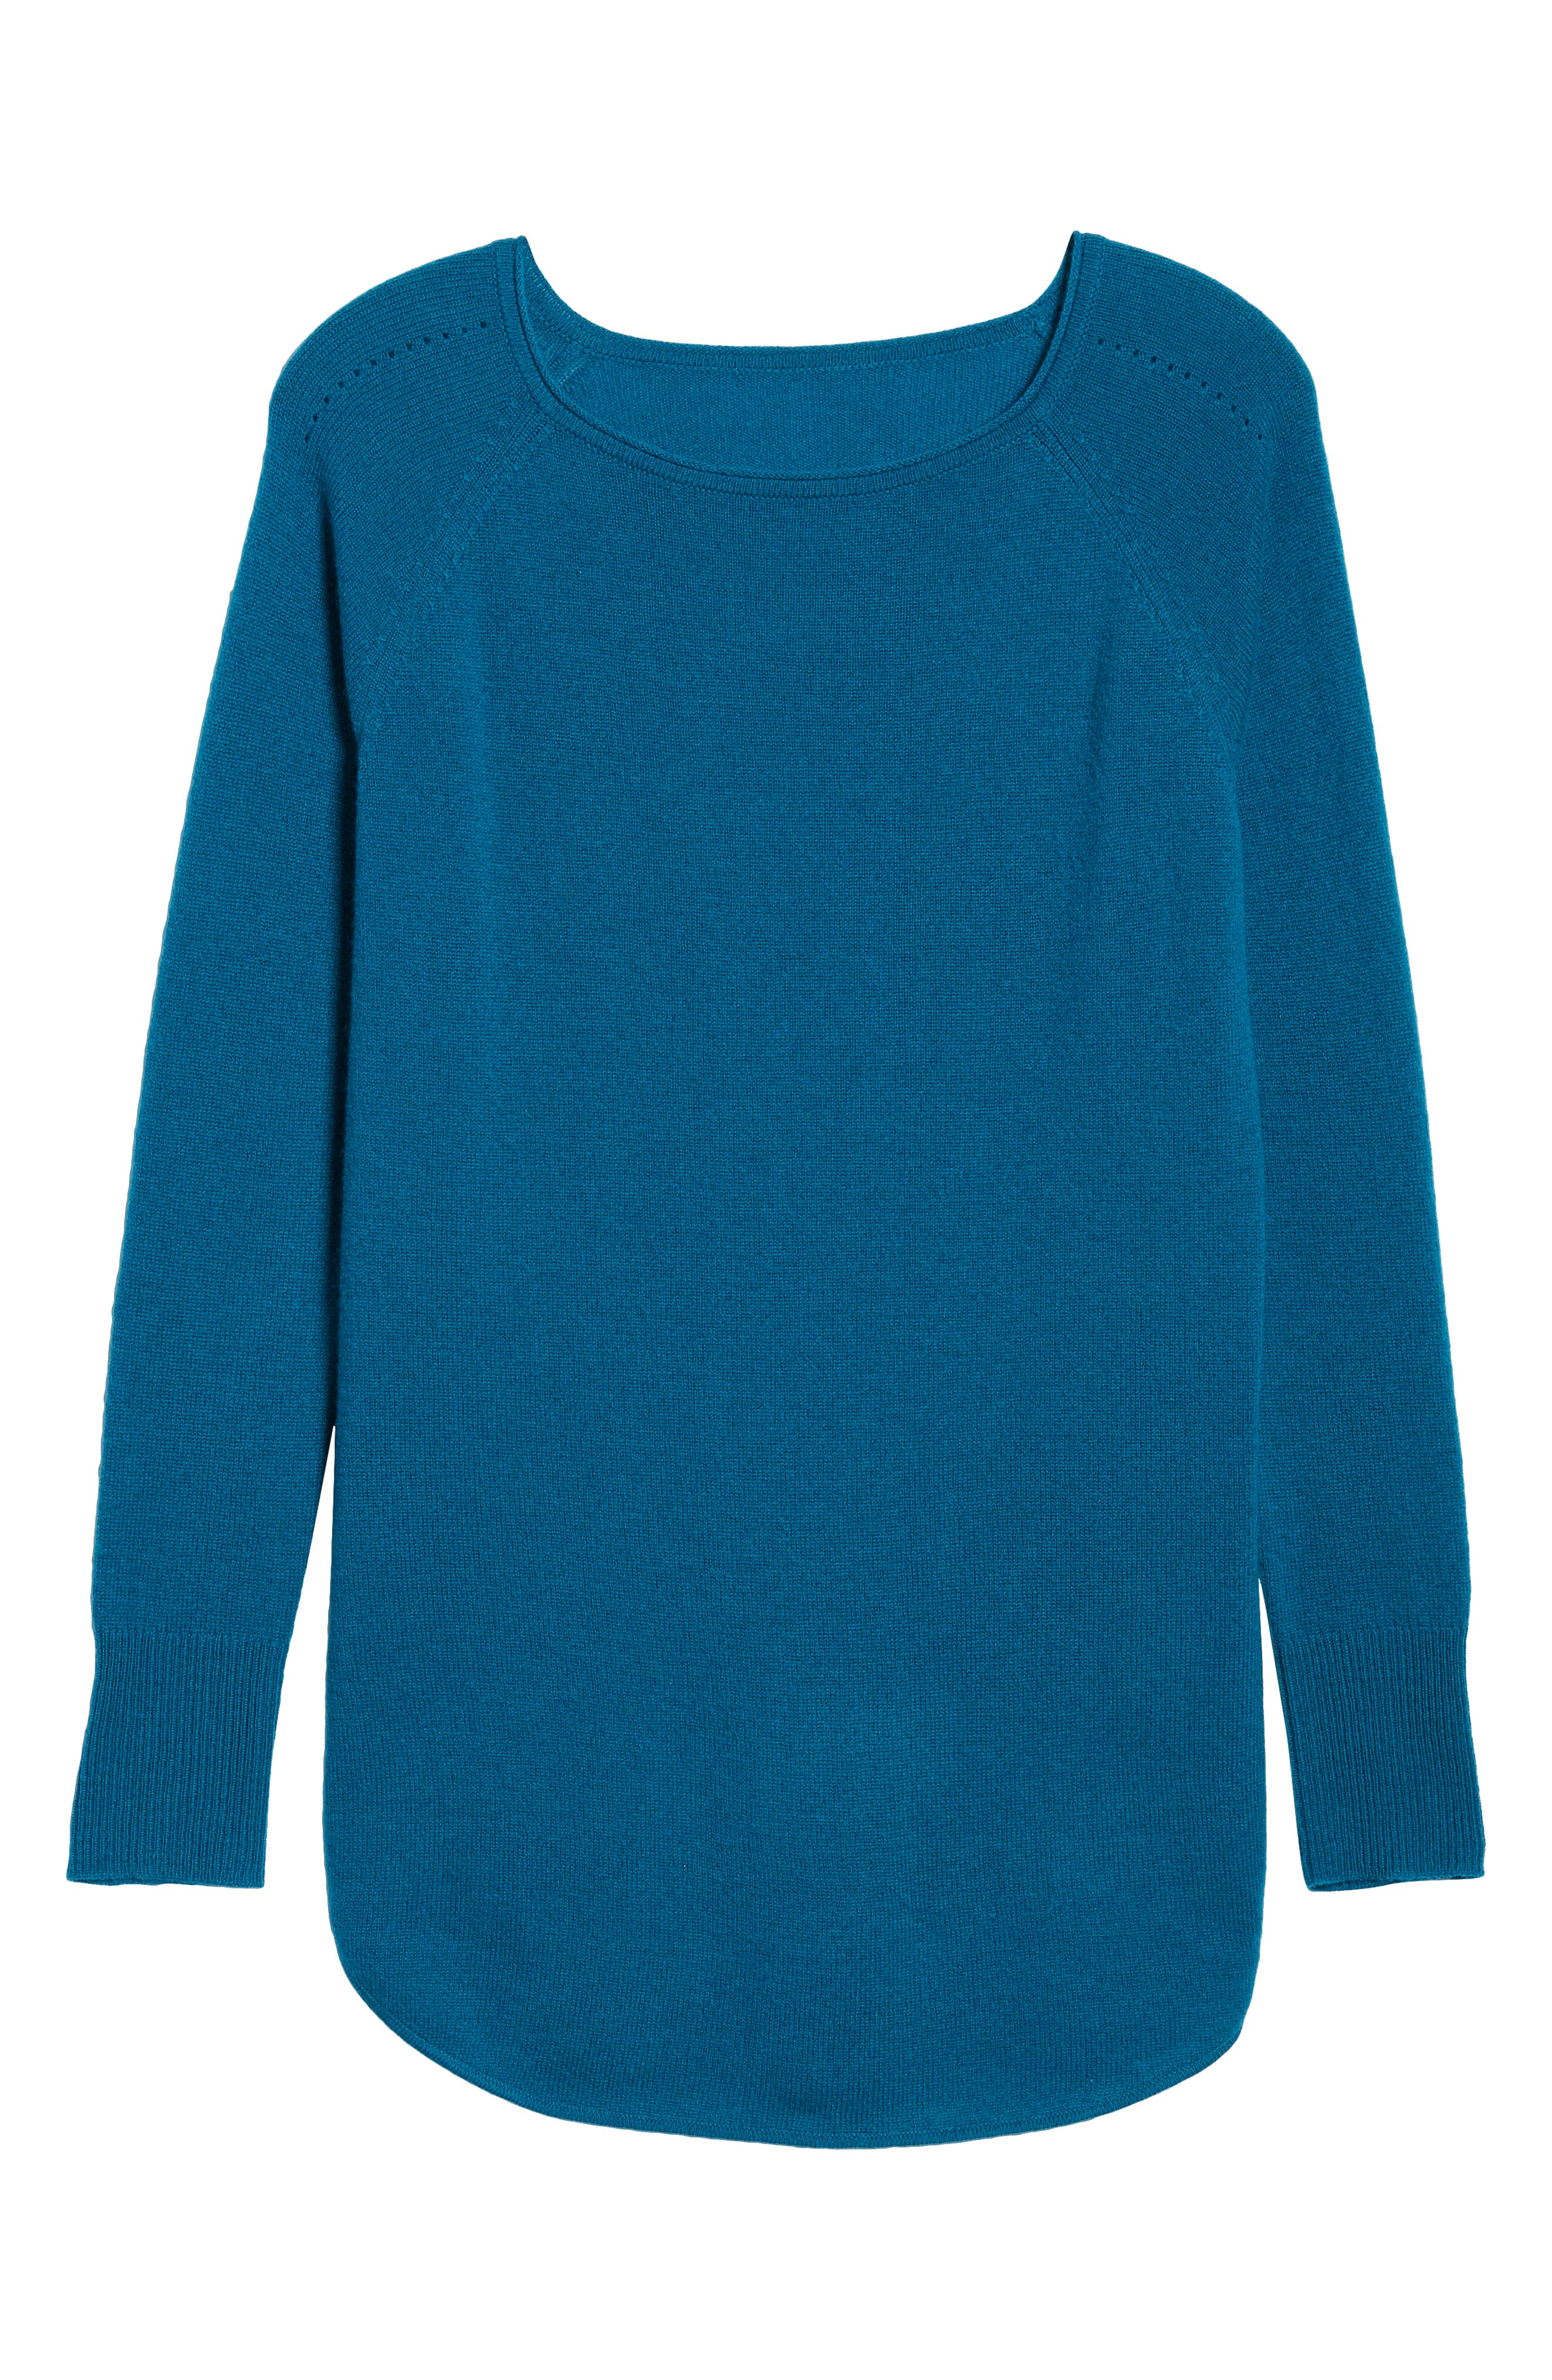 Shirttail Wool & Cashmere Boatneck Tunic,                             Alternate thumbnail 6, color,                             TEAL GLOSS